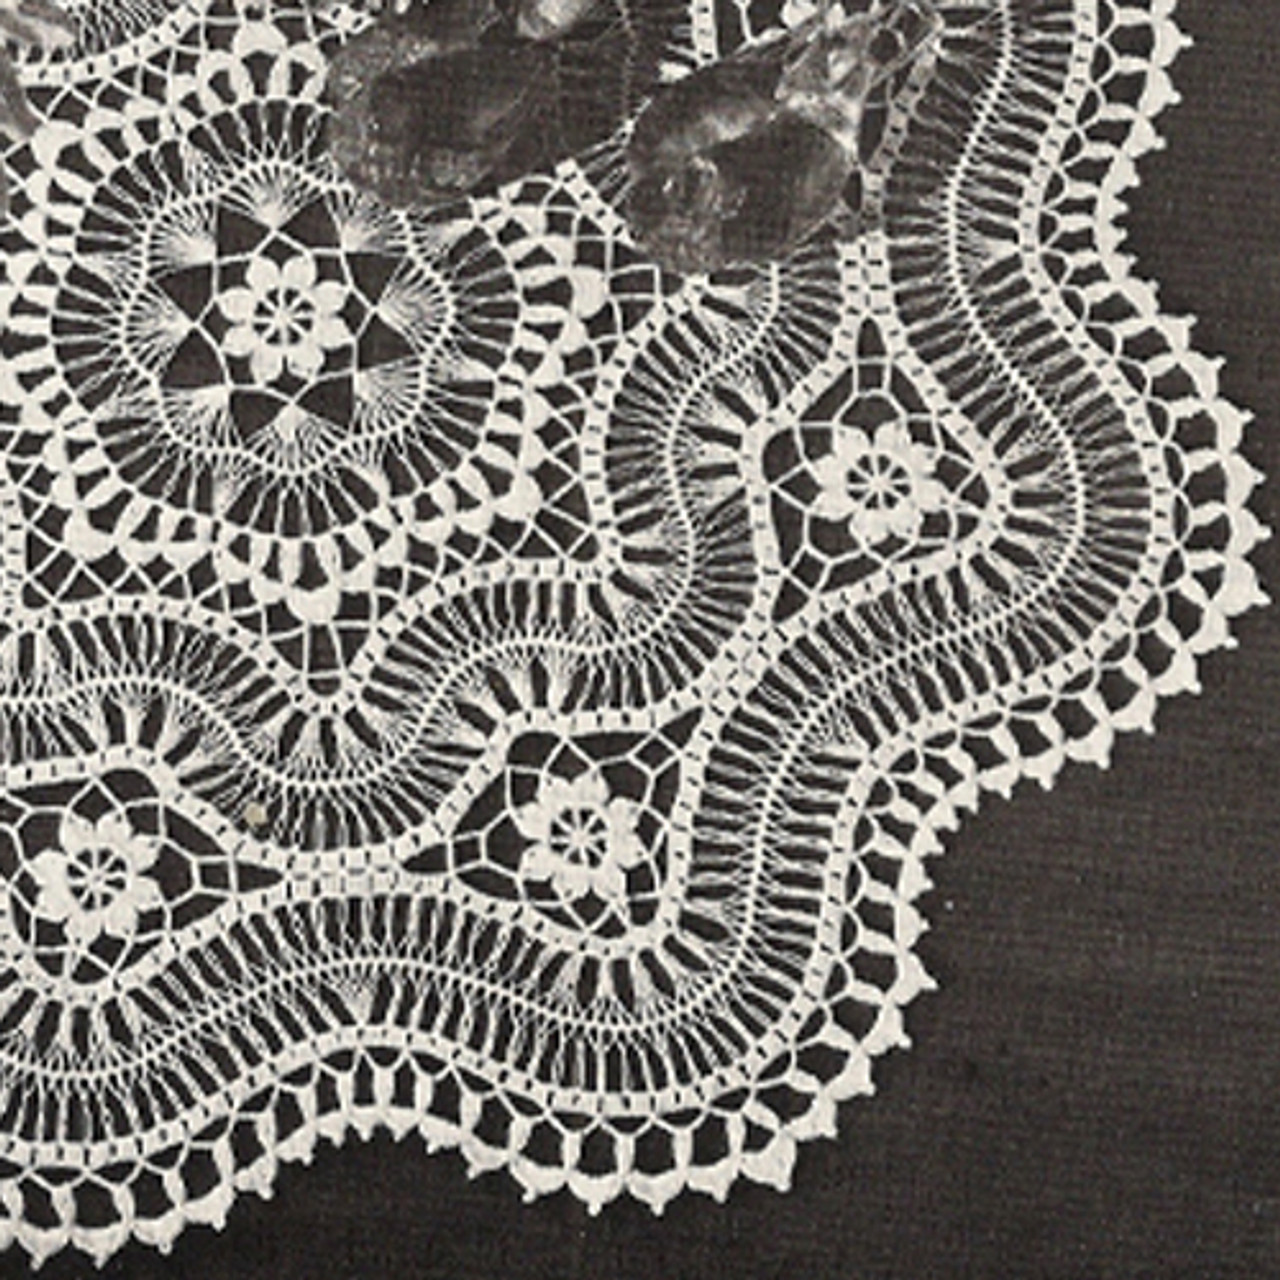 Vintage Scalloped Doily in Hairpin Lace